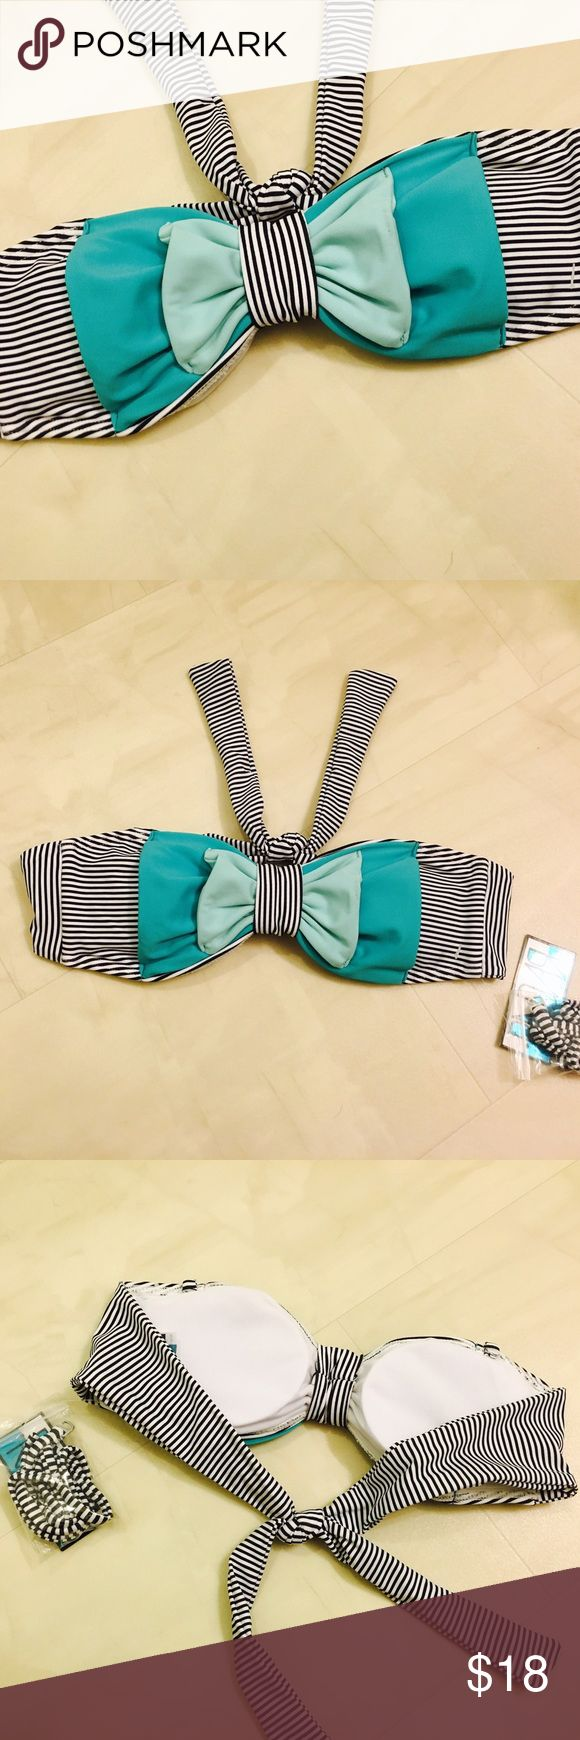 Radar Bow Bandeau Swim Top Radar Bow Bandeau Swim Top Size Small  NWT $38 Stripe with teal/sky blue bow  Convertible/Removable Straps  Tie back  Removable Lightly Lined Pads Swim Bikinis